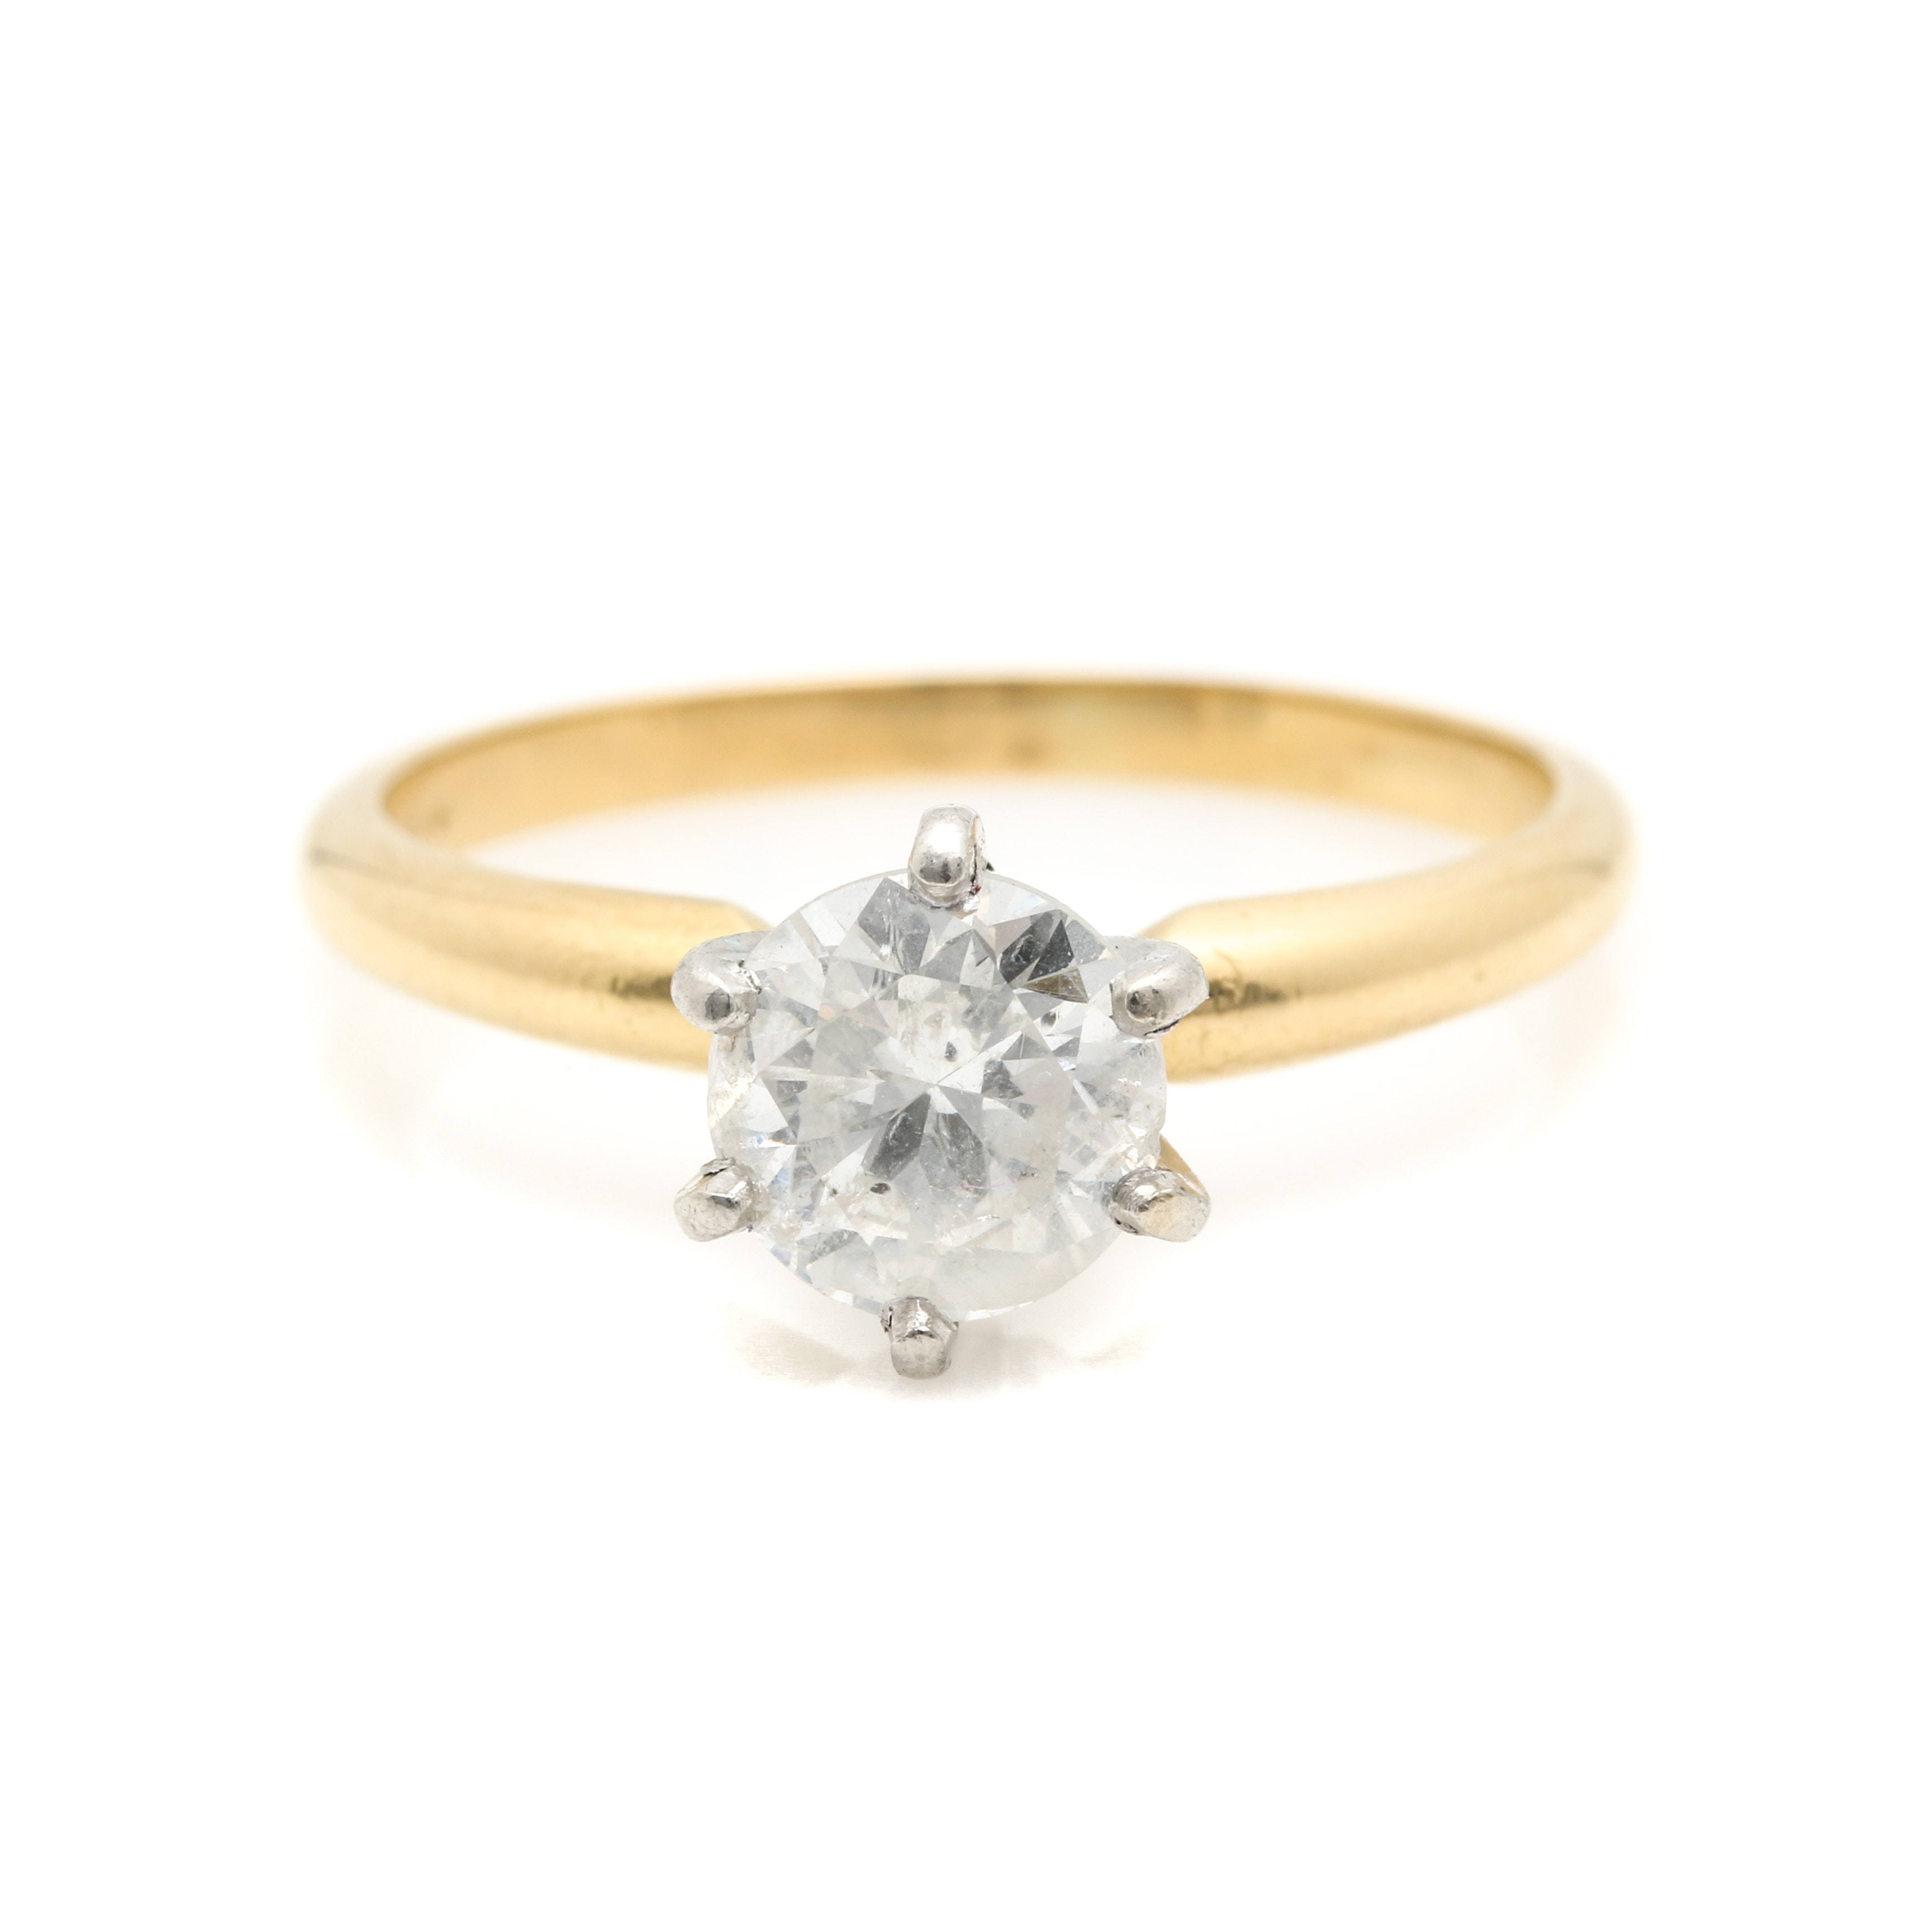 18K Yellow Gold 1.00 CT Diamond Solitaire Ring with Platinum Findings